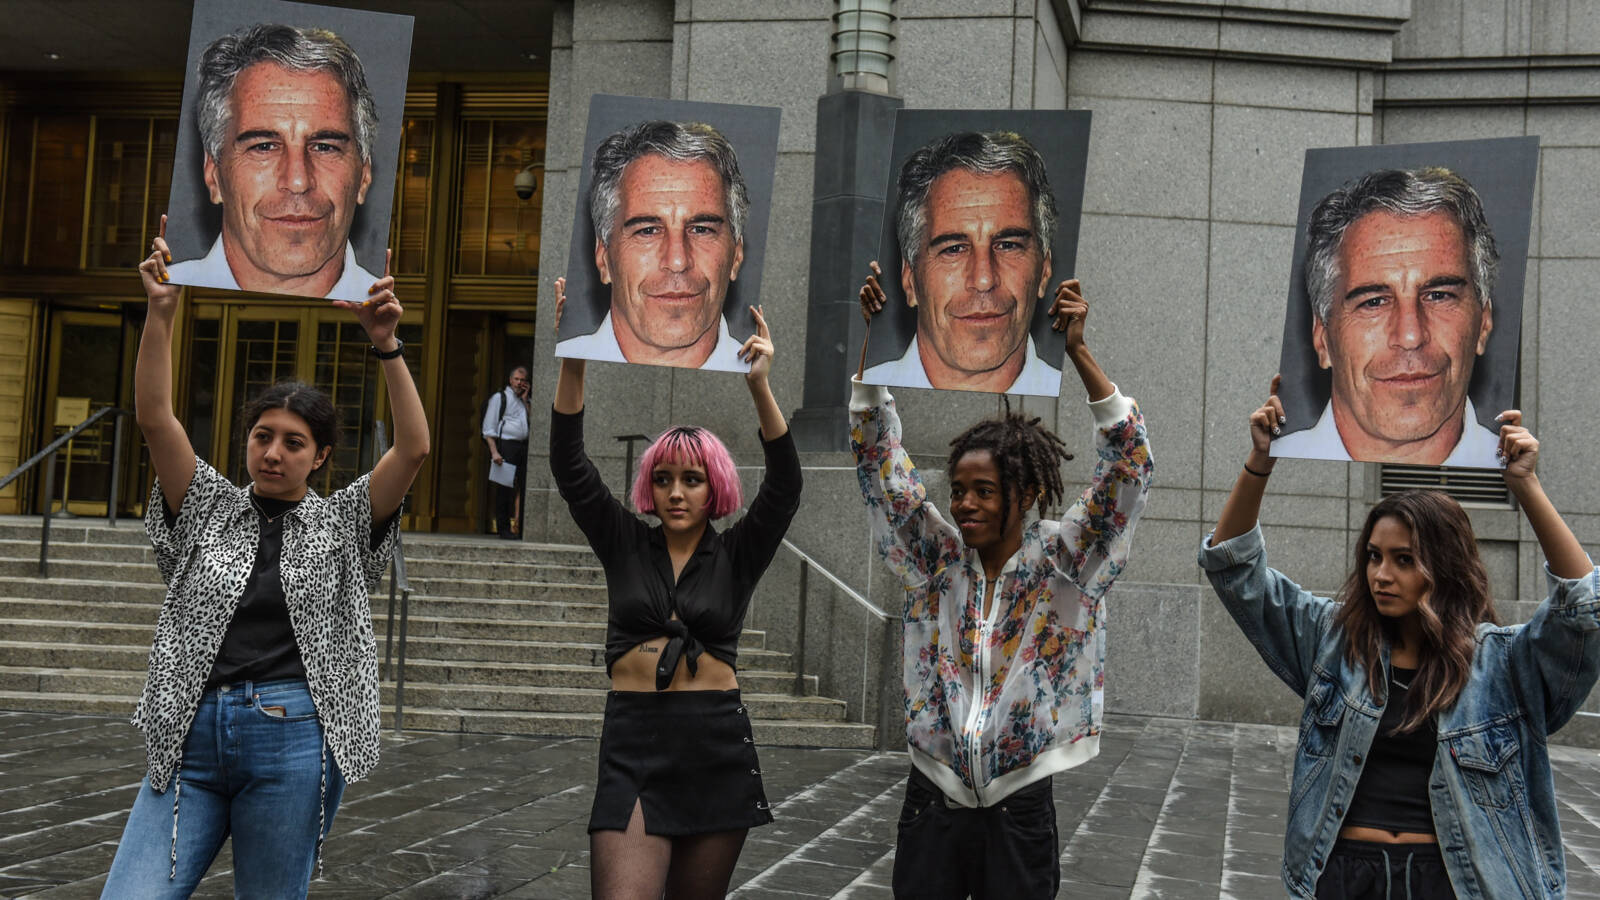 Protest against Epstein at courthouse, AFP video